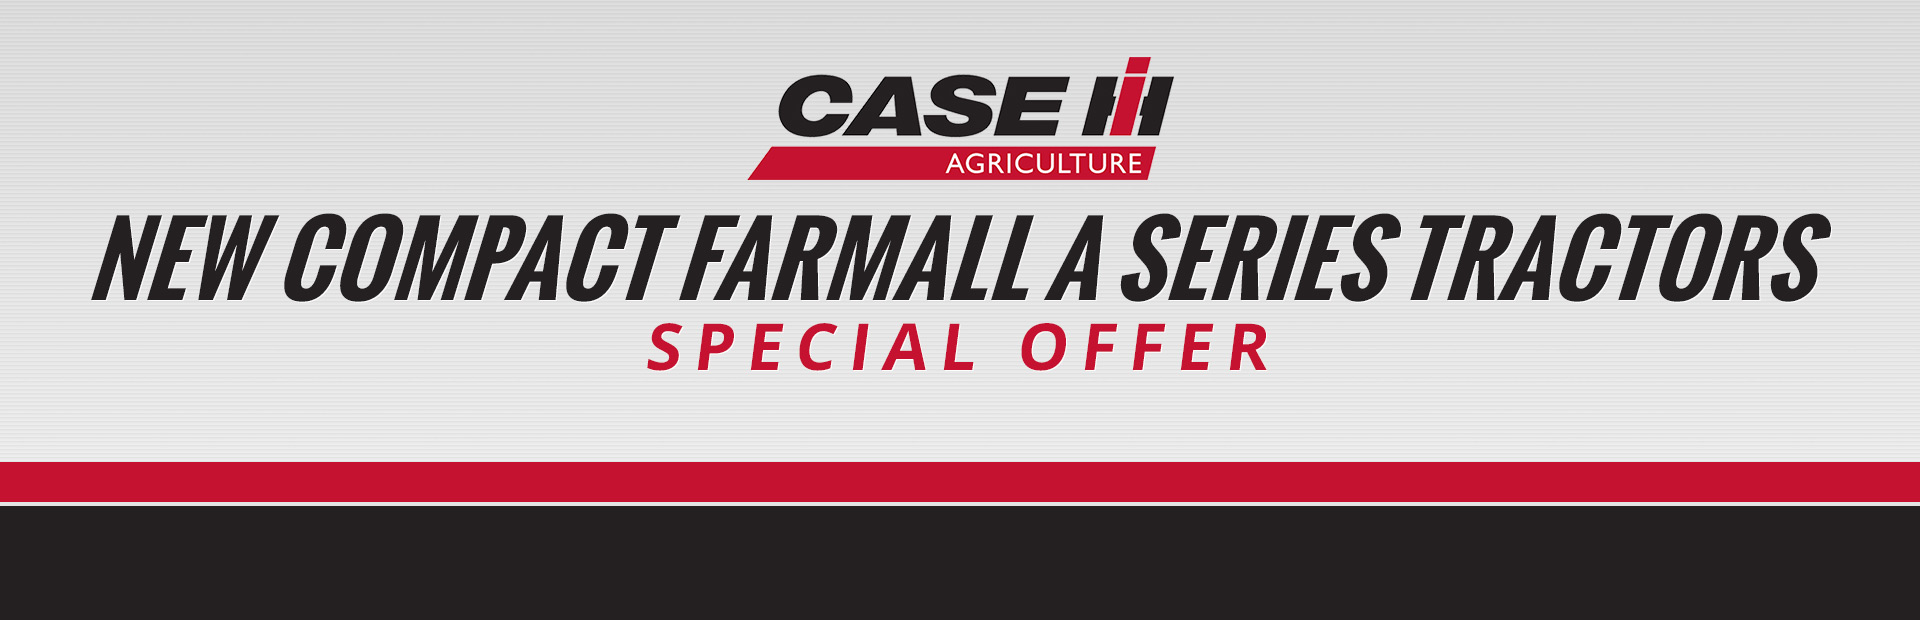 Case IH: New Compact Farmall A Series Special Offer